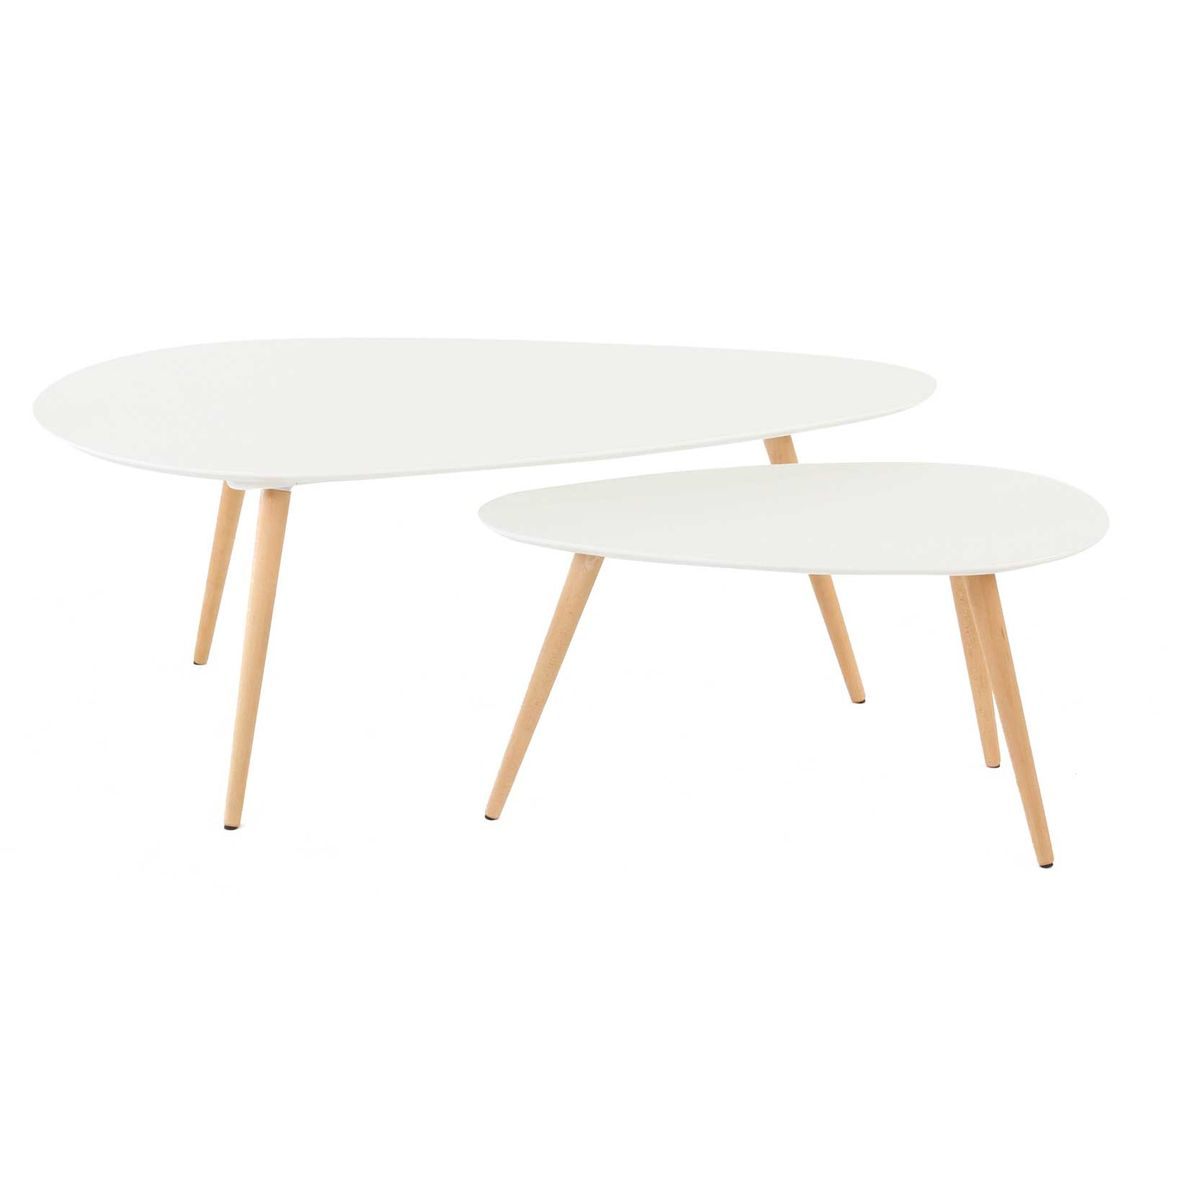 Tables basses gigognes ch ne et laqu blanc 116 cm scandie for Table de salon gigogne